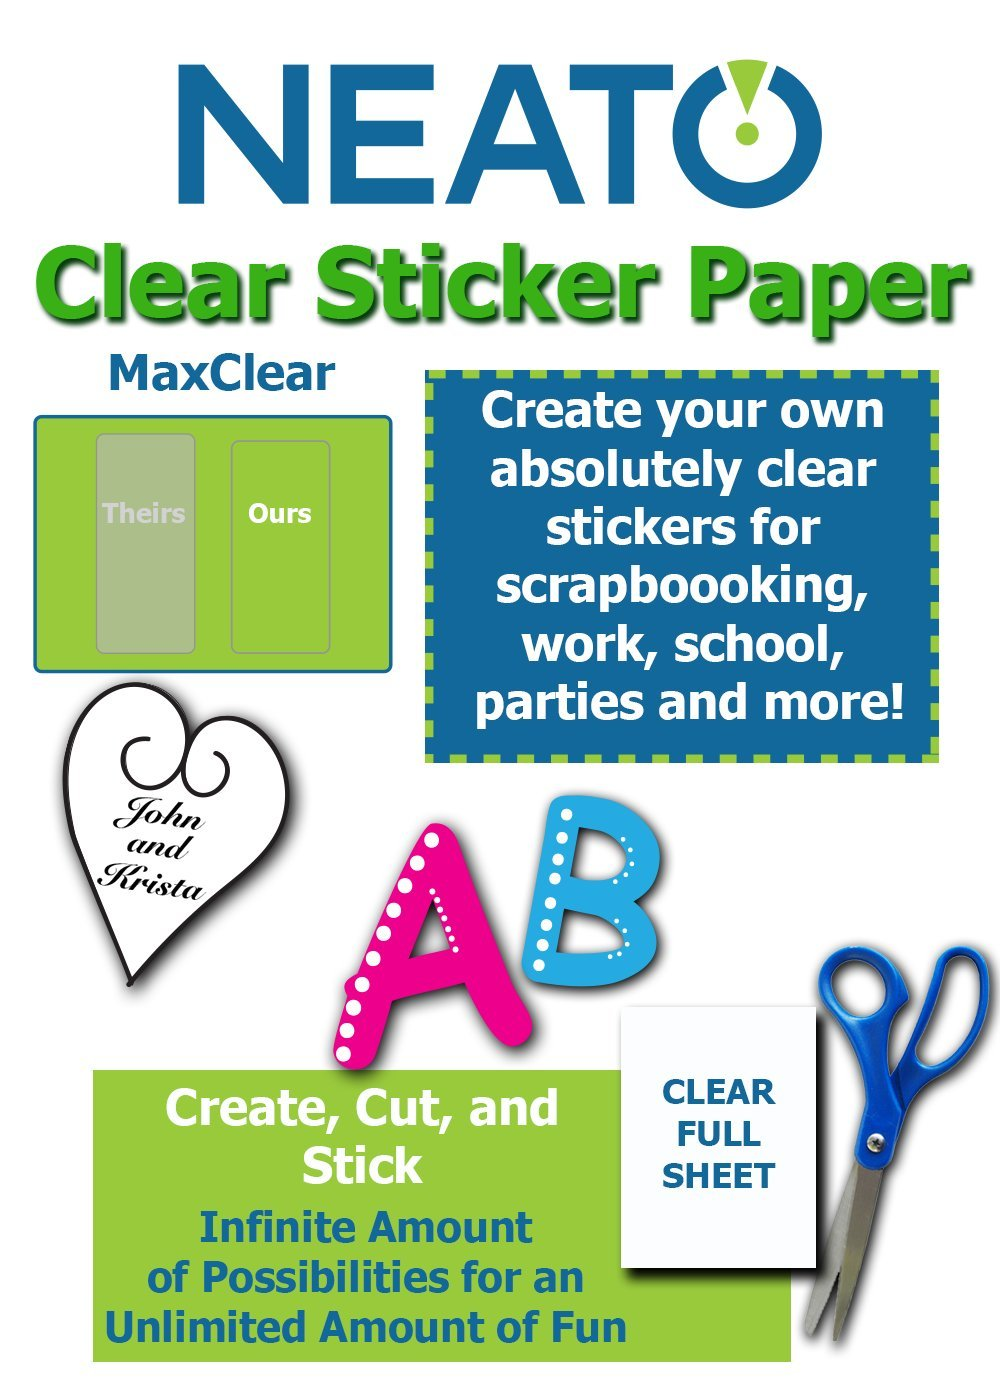 Neato Clear Labels - Transparent Full Sheet Printable Sticker Paper – 10 Totally Clear 8''.5 x 11 Sheets by Neato (Image #1)